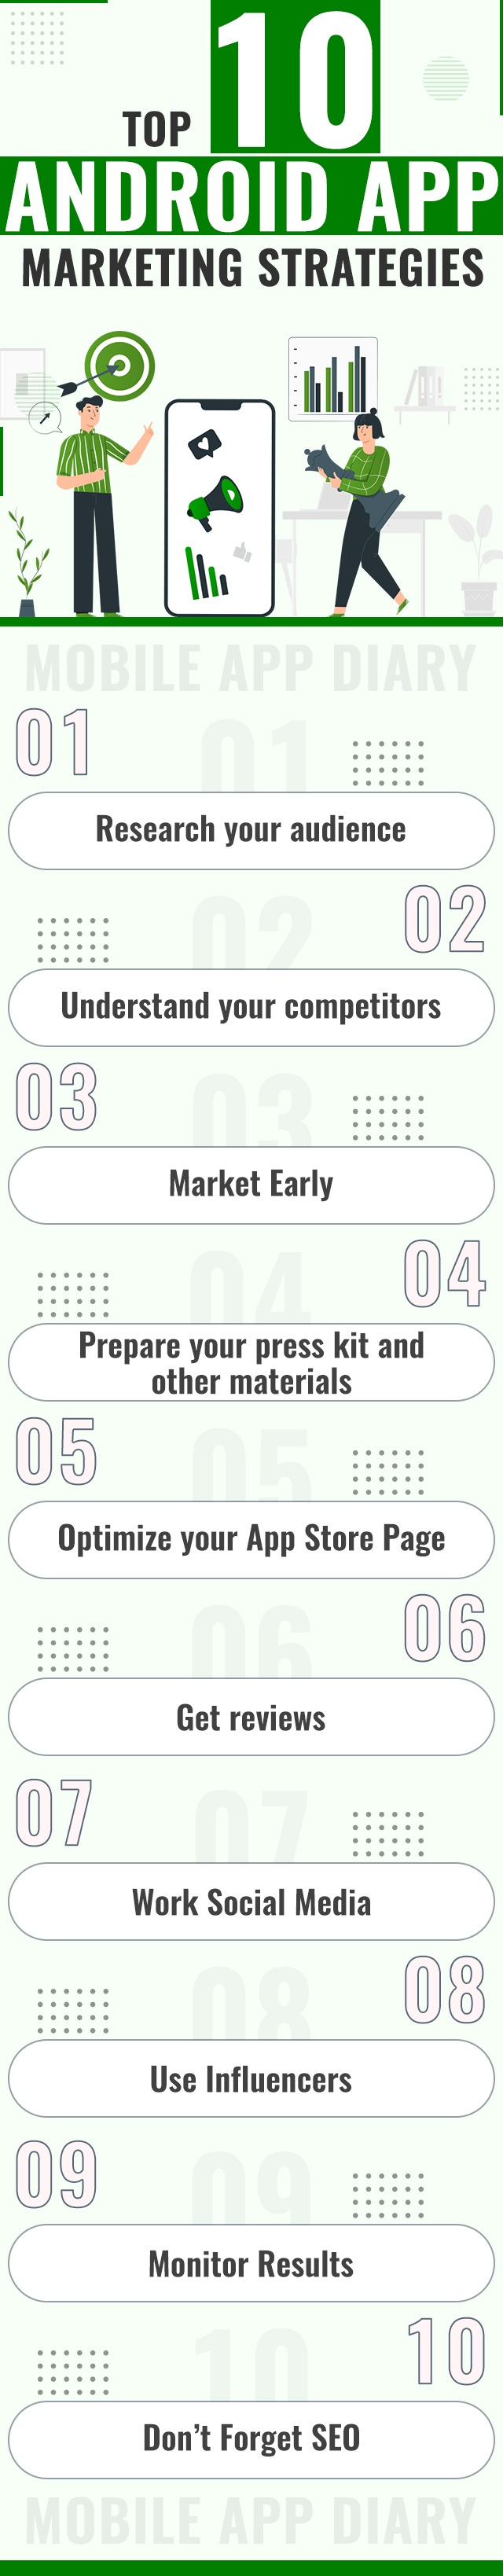 Top 10 Android App Marketing Strategies Infographic